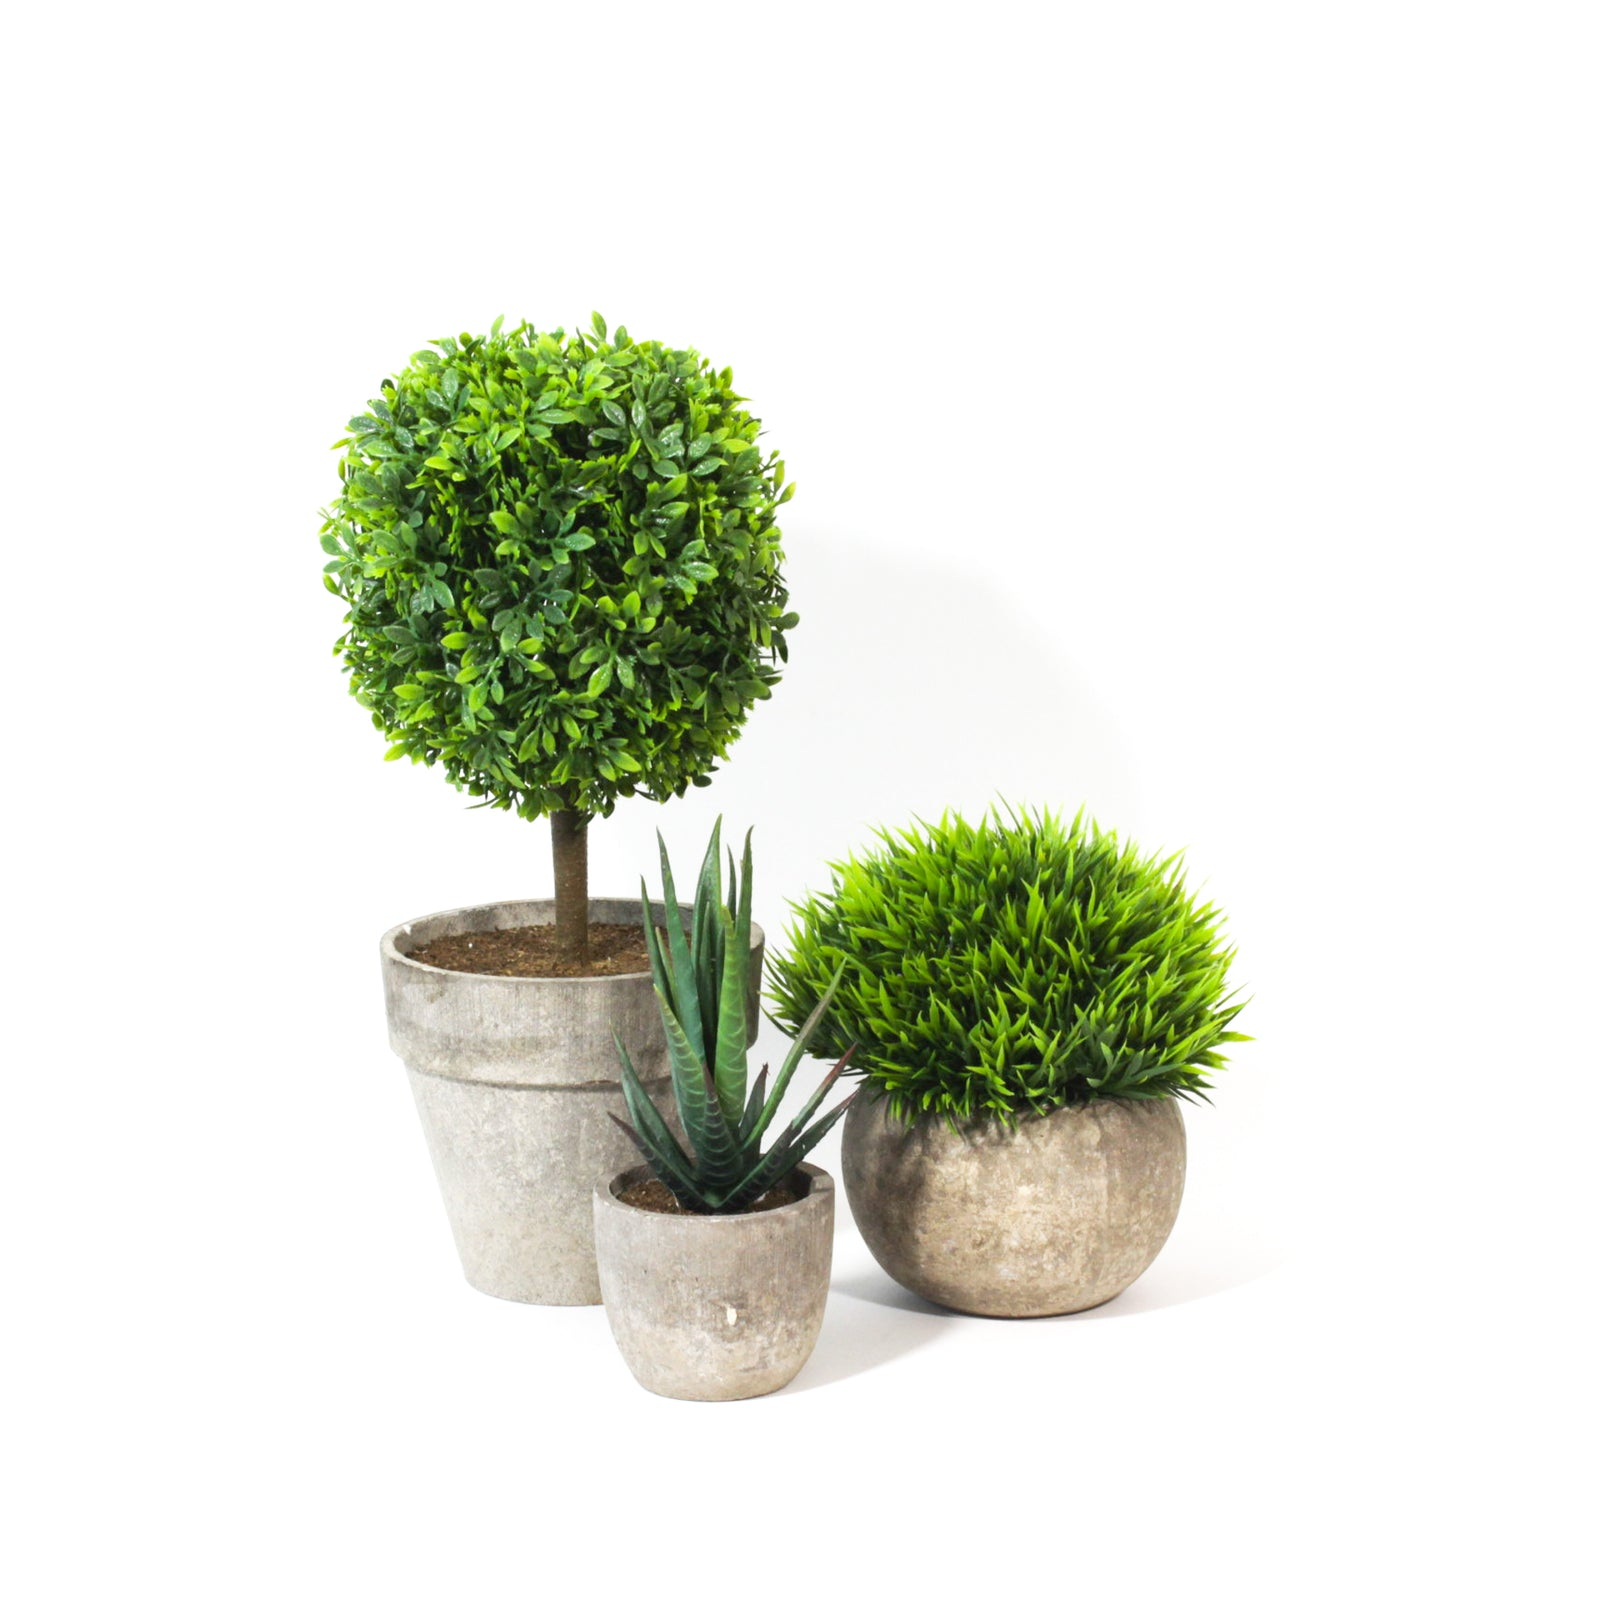 Potted Artificial Boxwood Topiary, faux plants